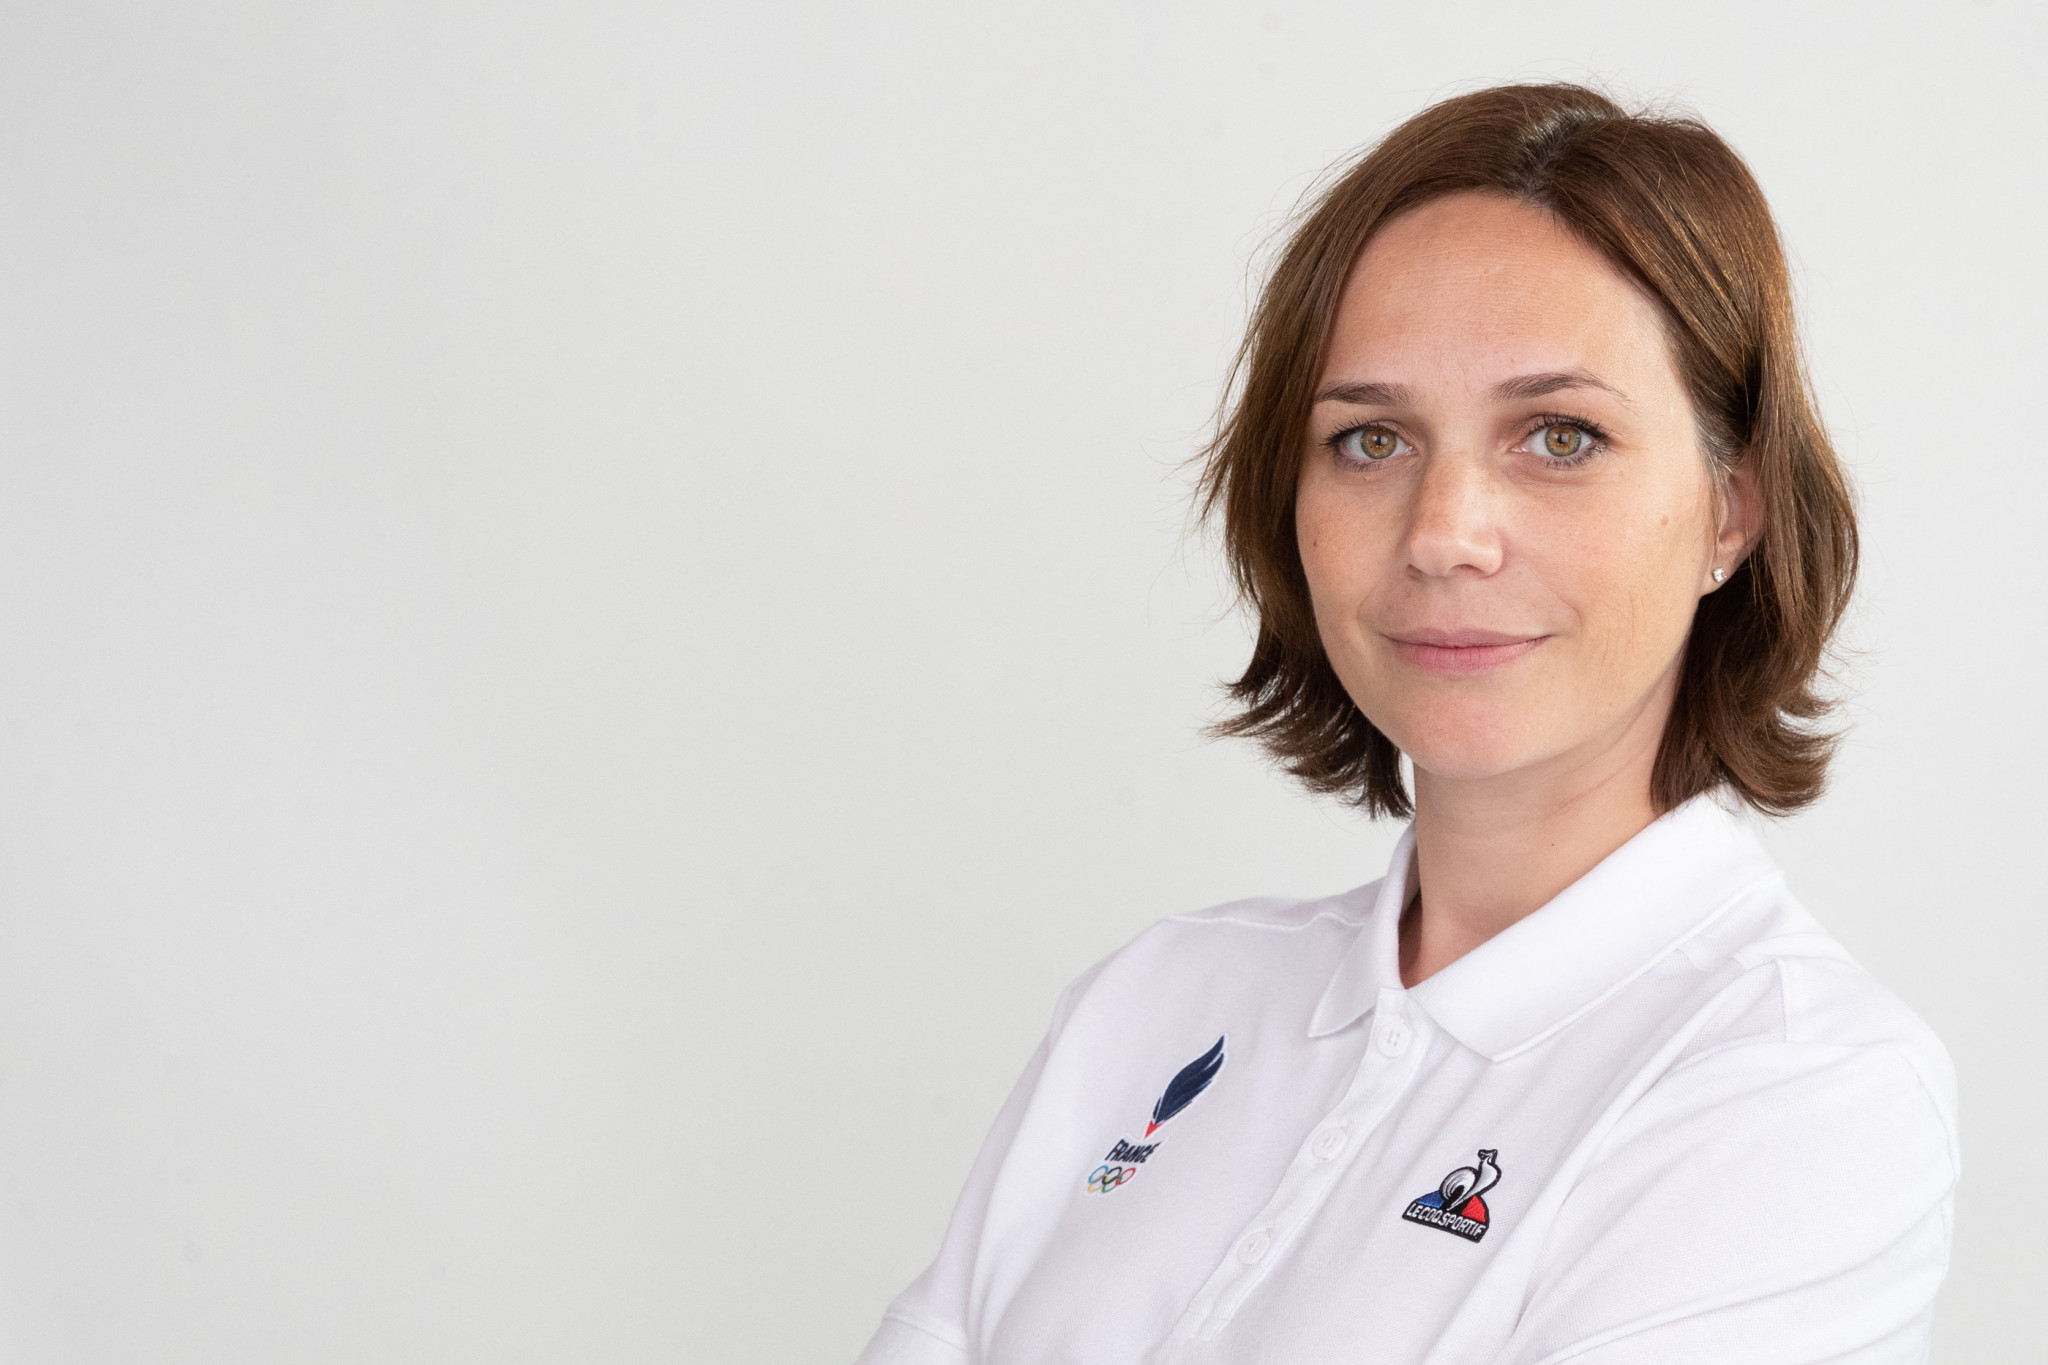 French Ice Sports Federation President Péchalat appointed France's Beijing 2022 Chef de Mission